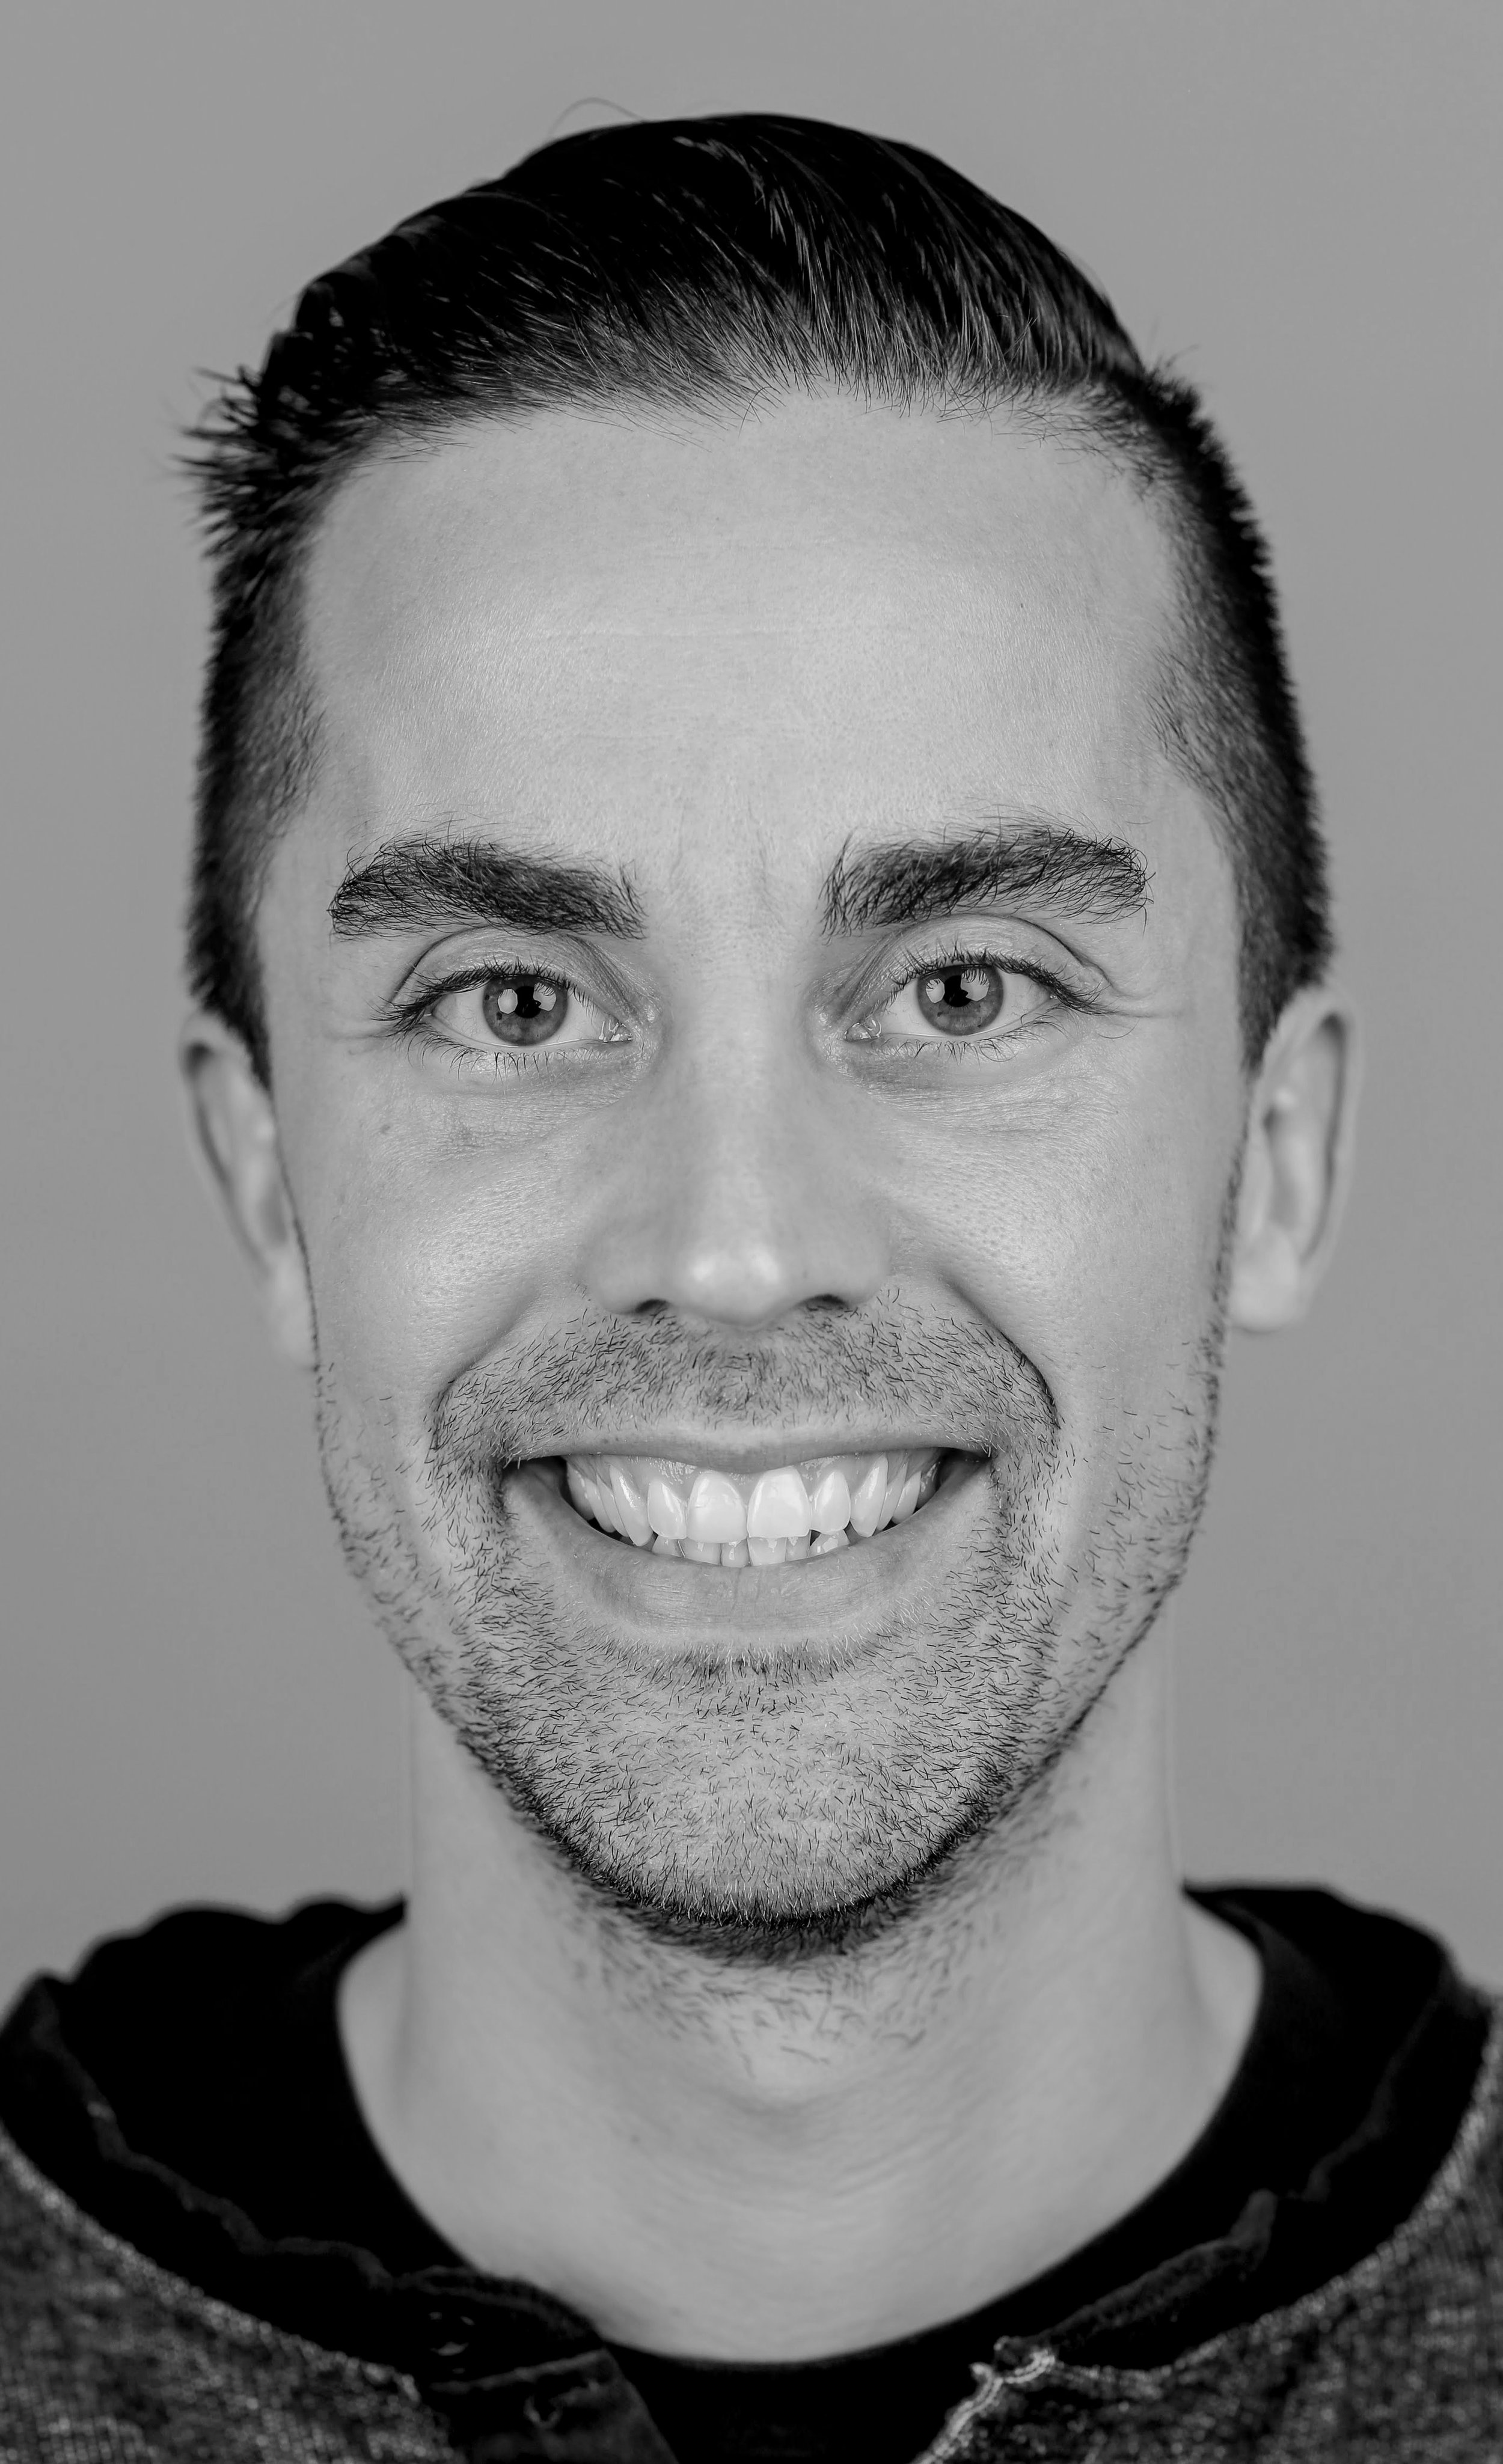 Matt Lockyer - Head of Blockchain Solutions - Matt is the Founder of Soloblock Solutions Inc. They believe in permissionless innovation. Creating experiences that enable individuals to create, own and exchange unique digital assets connected to your brand. Soloblock is a full service token engineering, smart contract and decentralized application consultancy. The future of commerce is code.Matt proposed ERC-998 - Crypto Composables in Spring 2018, which has opened Blockchain for Climate's pathway to putting the Paris Agreement on the Blockchain. You can learn more about this innovation HERE.Matt pursued PhD Interactive Arts and Technology from Simon Fraser University and has BA Computer Science from the University of British Columbia. He has previously developed software to create interactive art, games, tools, platforms, web + mobile applications and innovative course materials. His PhD research challenged him to build new more complex tools and measure emotional responses to motion graphics (affect). He now gets to combine his understanding of technology, his experience in academic settings, his passion for innovation, information and large-scale impact to co-create new solutions and practices focused on climate.Matt is a Big Brother to Luca, who he has been matched with for over 4 years. They have attended lots of great events including: wakeboarding, sailing and snowtubing. Matt genuinely cares about the future of the planet and many generations of humans living here.